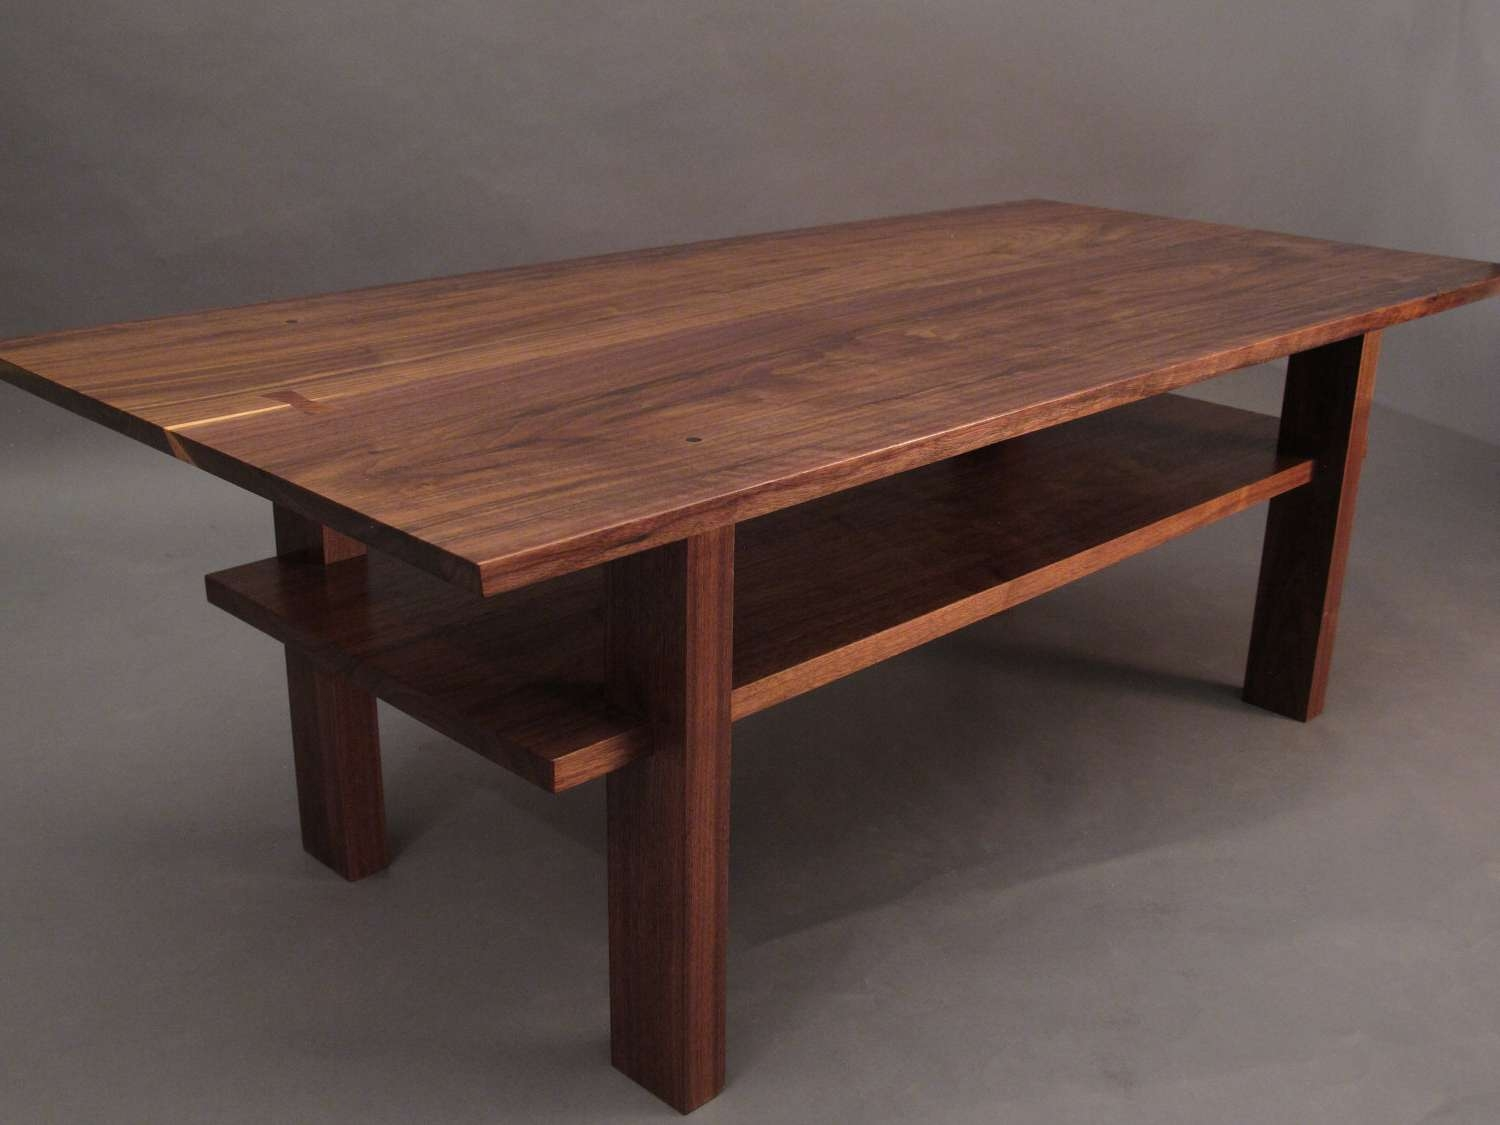 Well Known Small Wood Coffee Tables Throughout Coffee Tables : Splendid Small Coffee Table High End Coffee Tables (View 5 of 20)